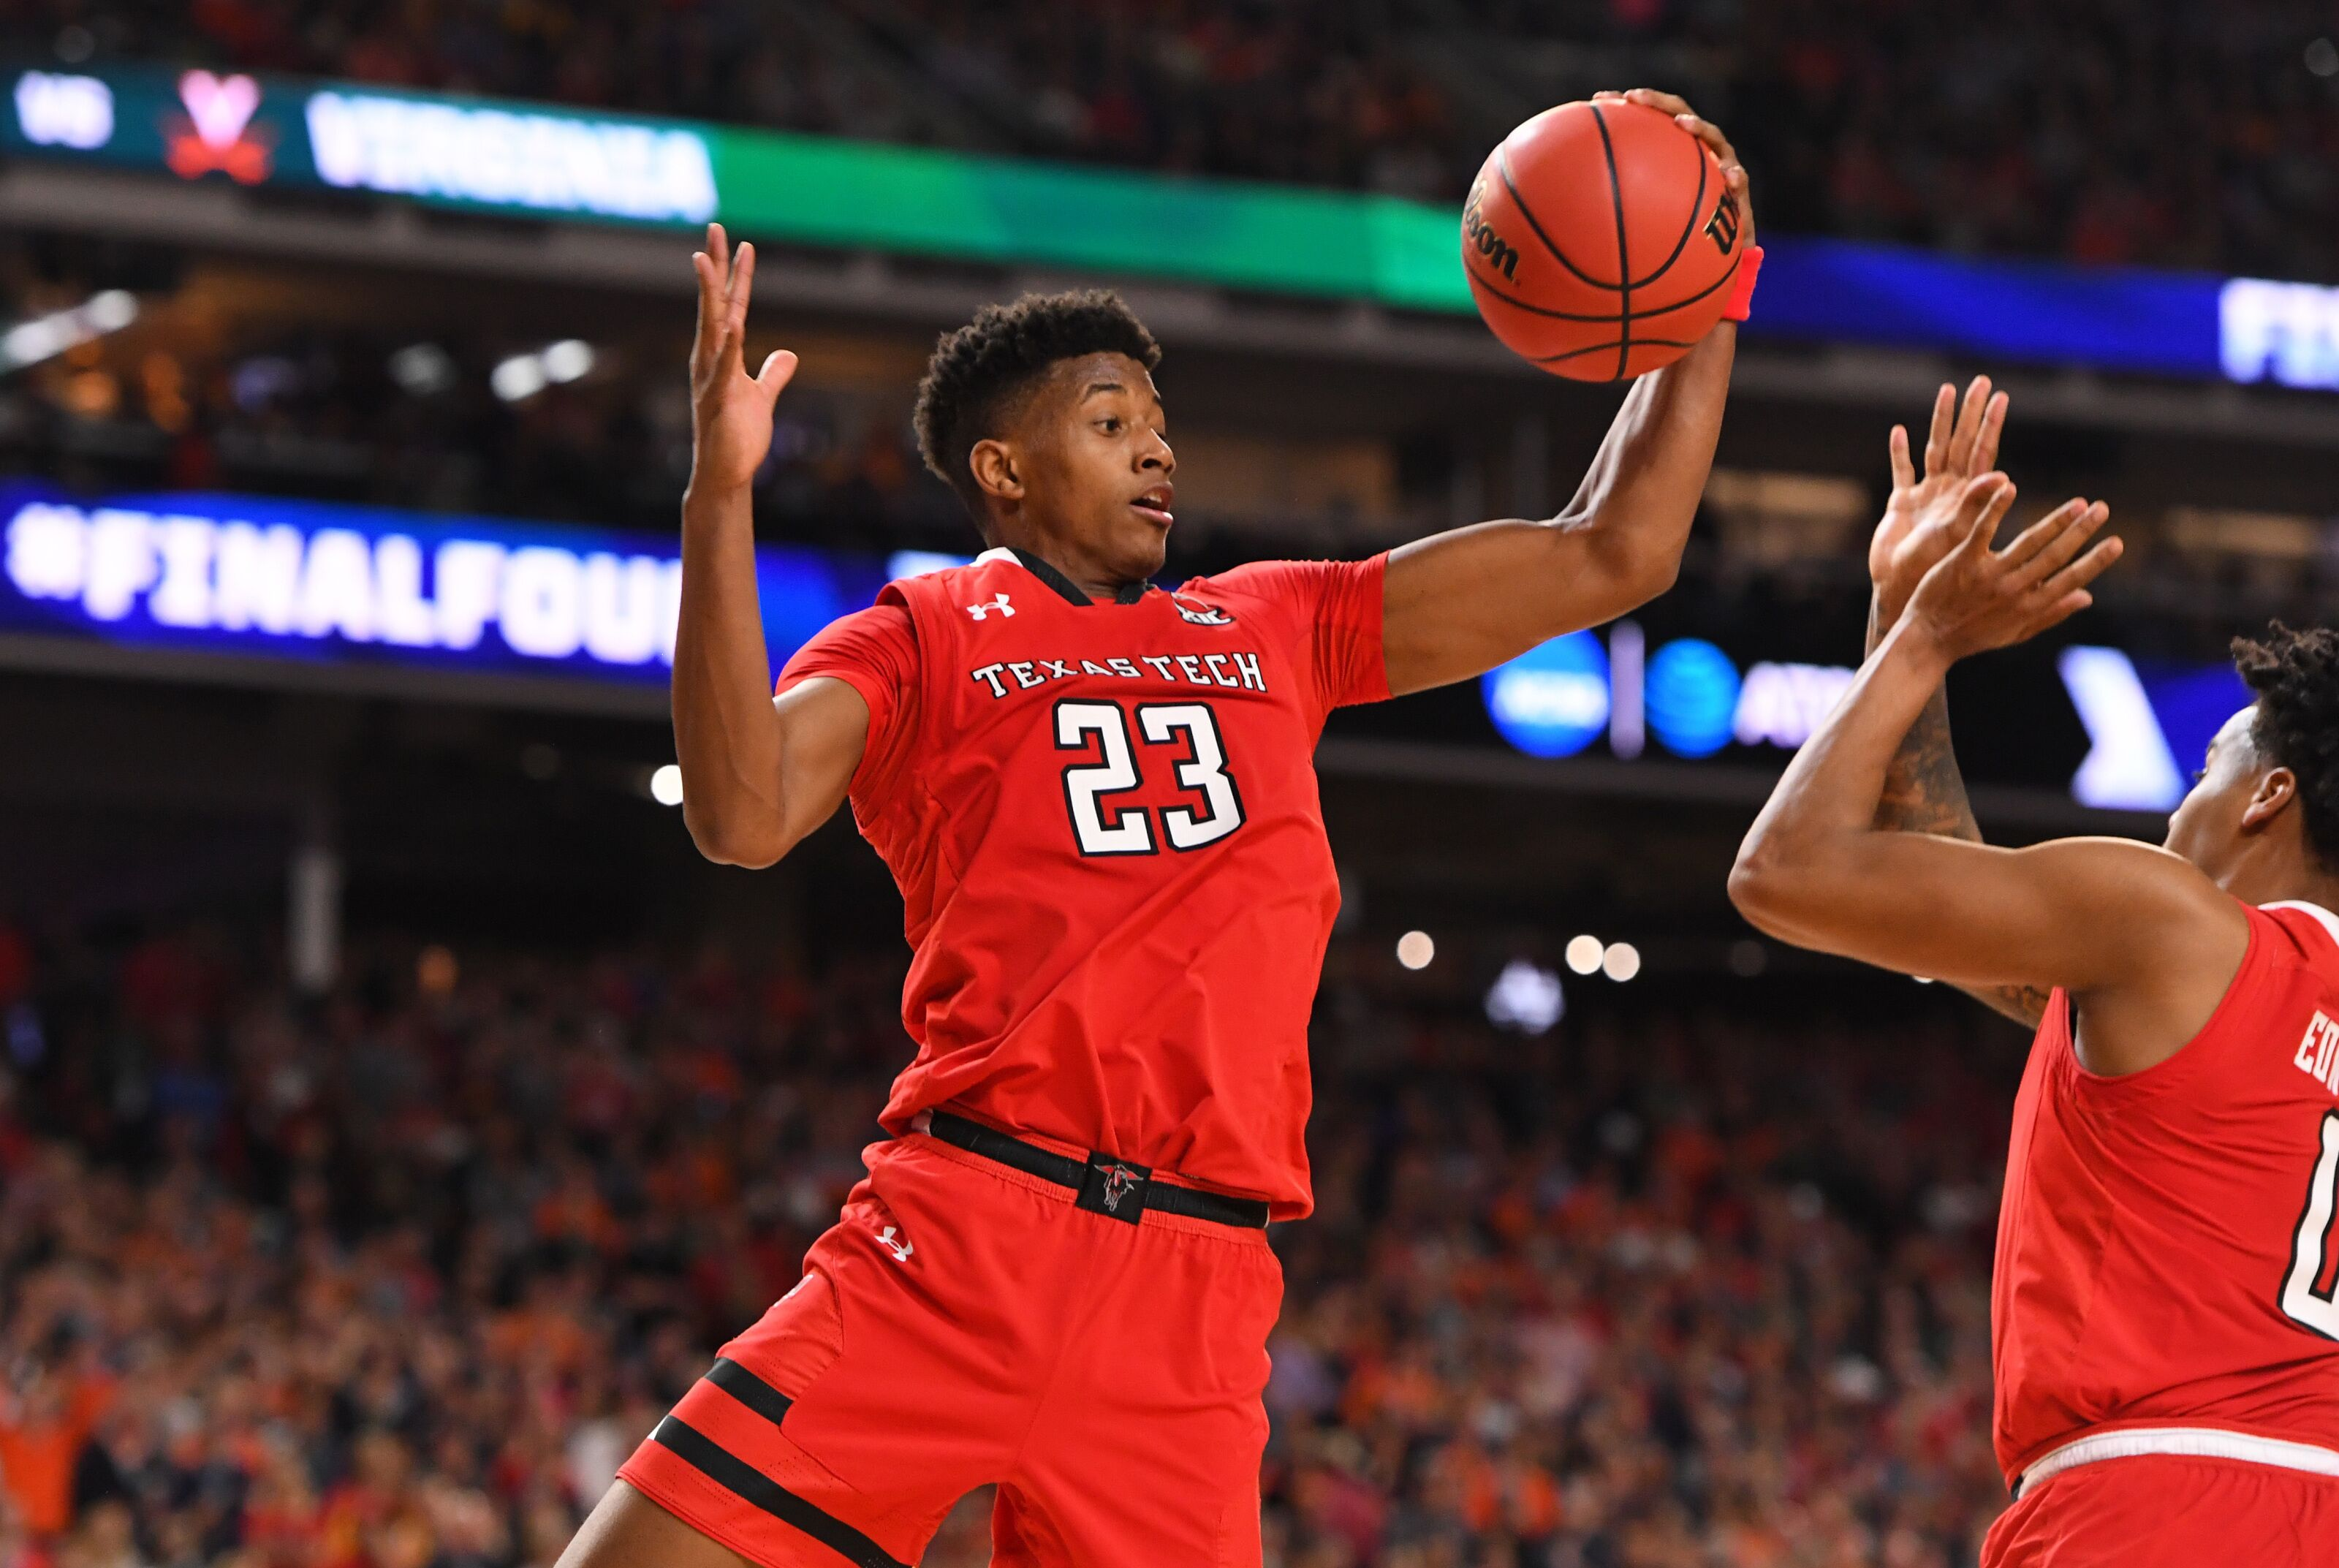 ae049c616 Lakers Must Draft Jarrett Culver If Available. Los Angeles Lakers logo